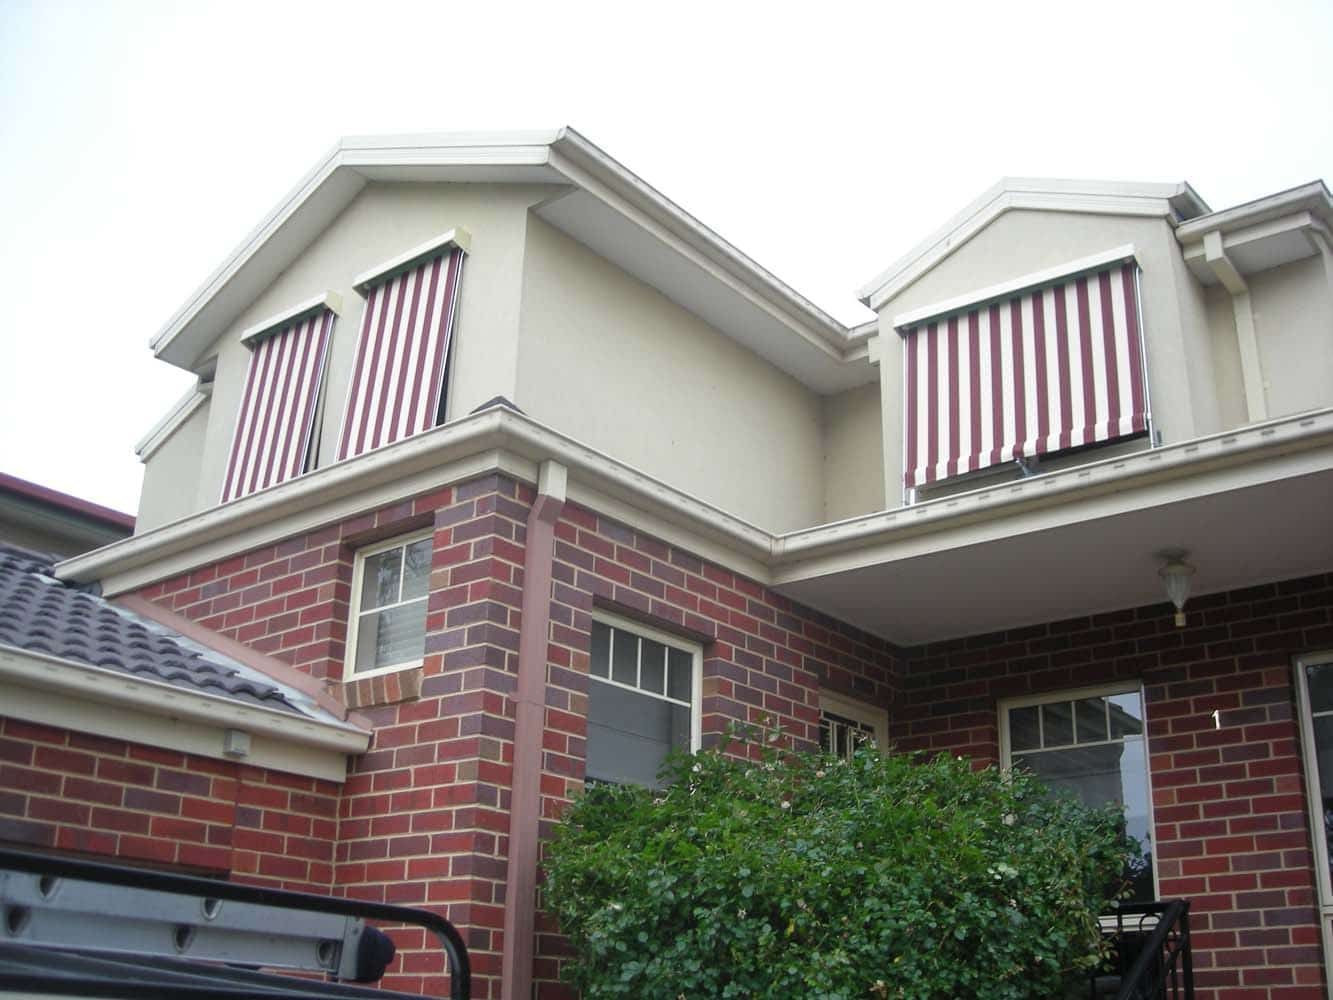 OUTDOOR AWNING 14